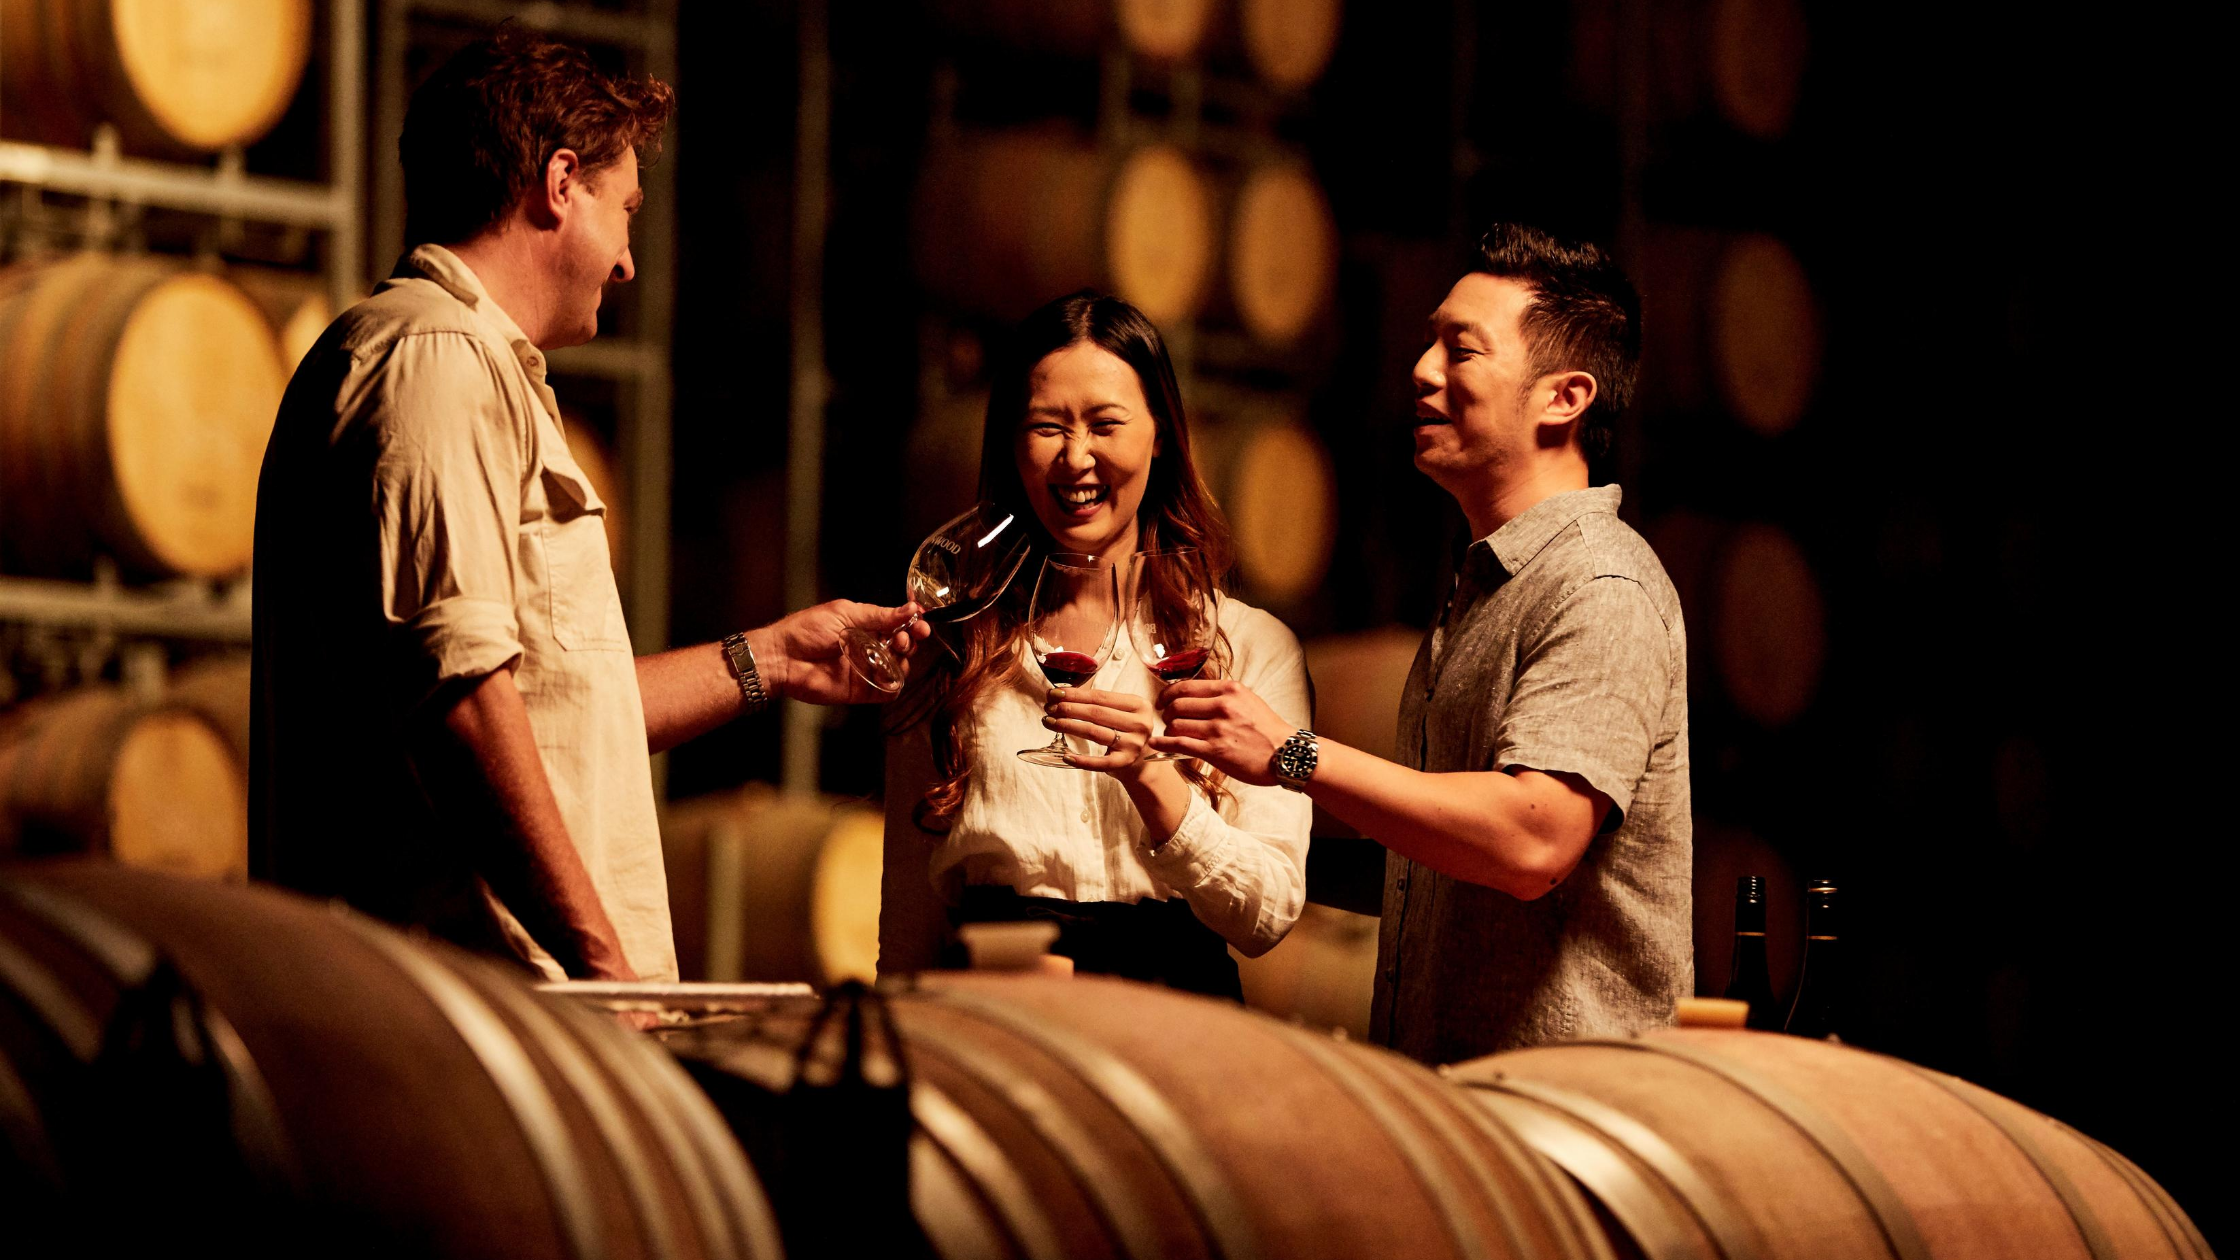 Image of a couple wine tasting at a vineyard in NSW